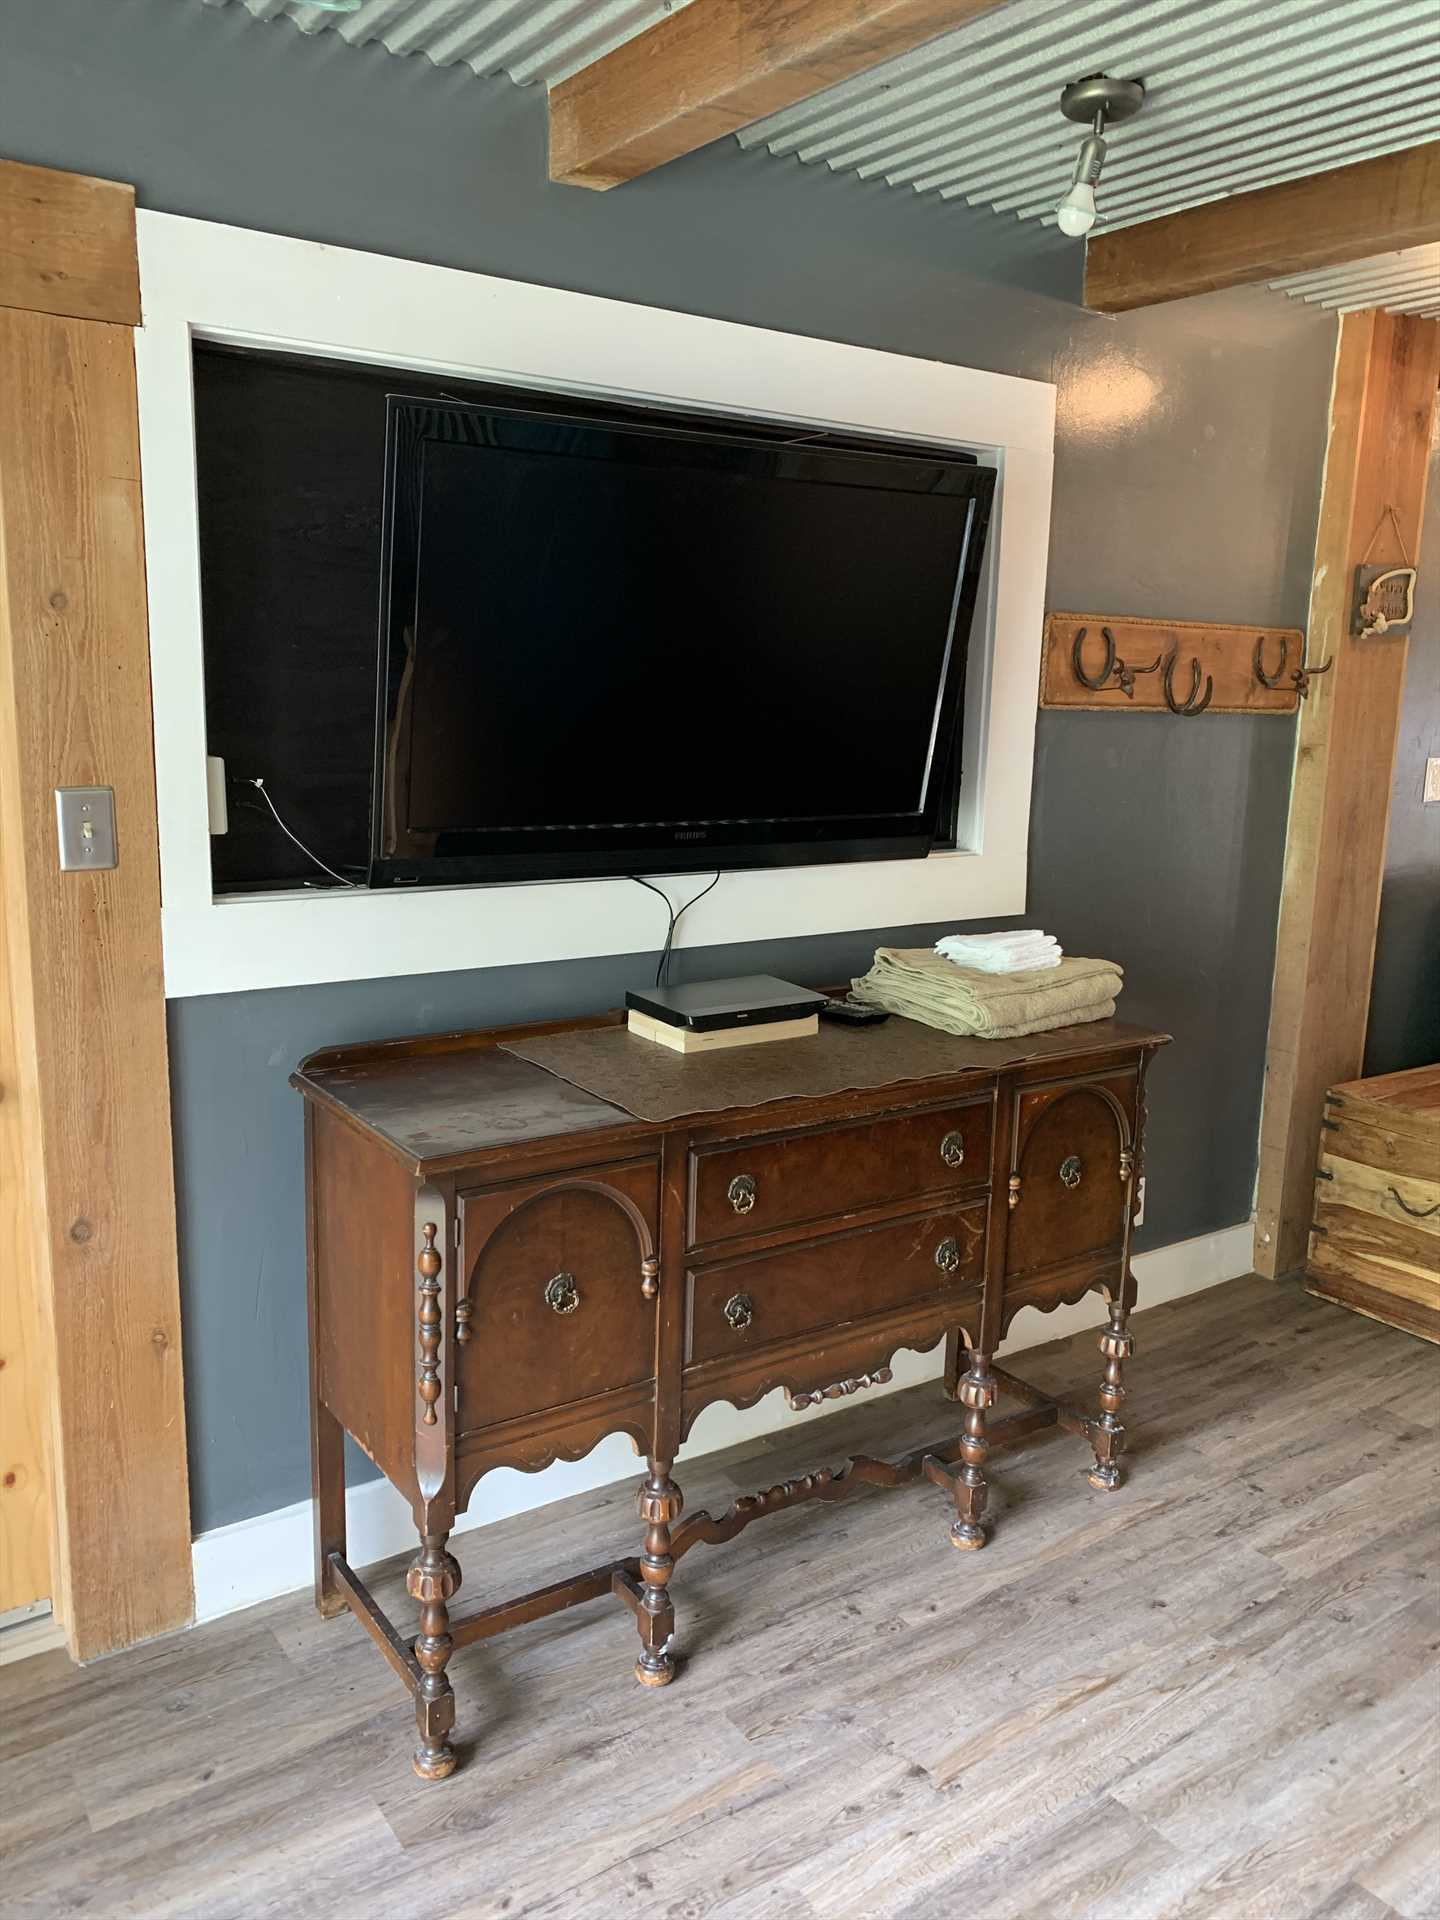 Your stay at the Hideaway includes TV with Roku and cable channels and Wifi Internet service.